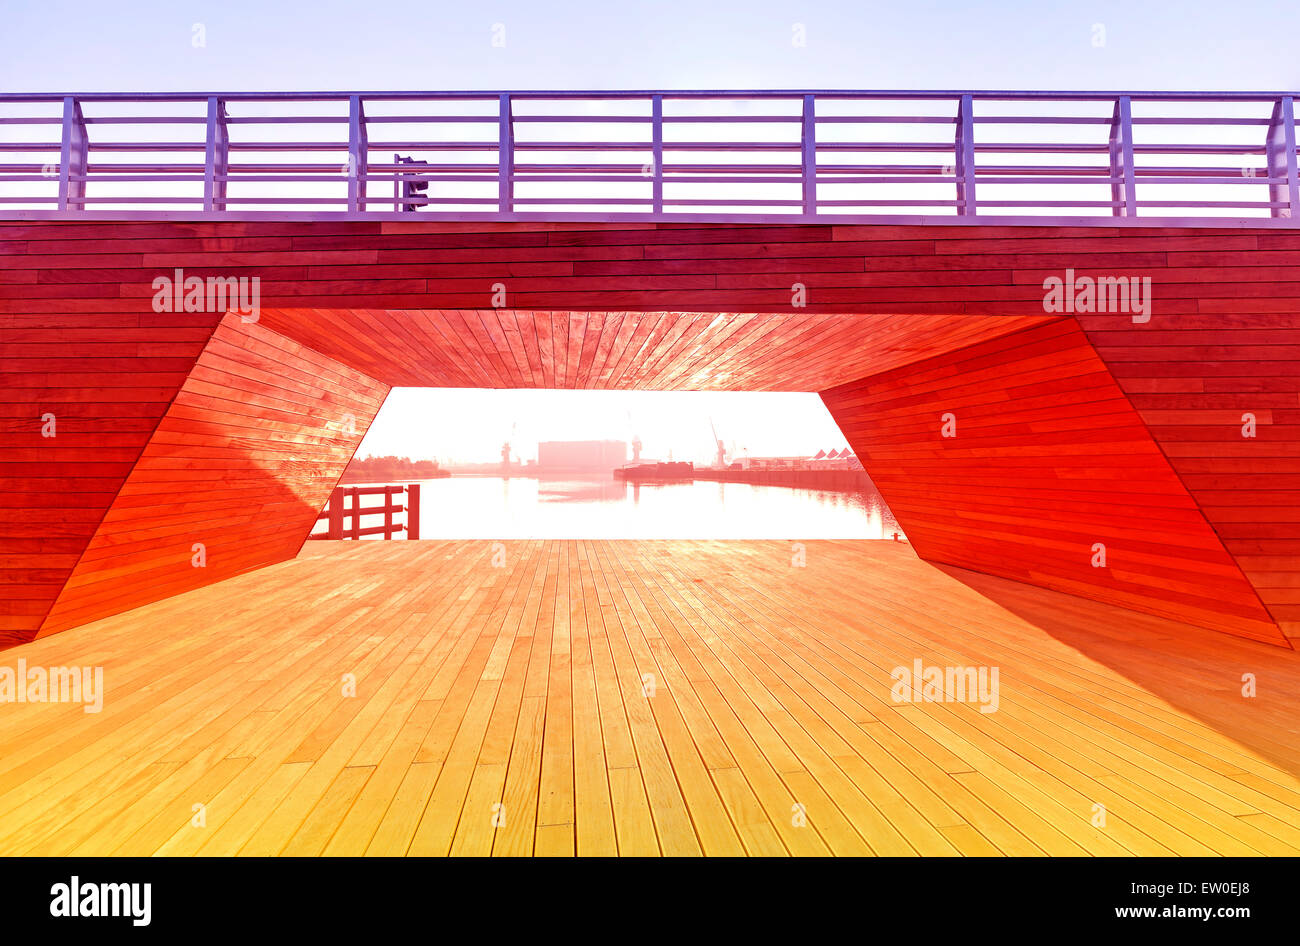 Vintage toned wooden construction background, intense colors. - Stock Image